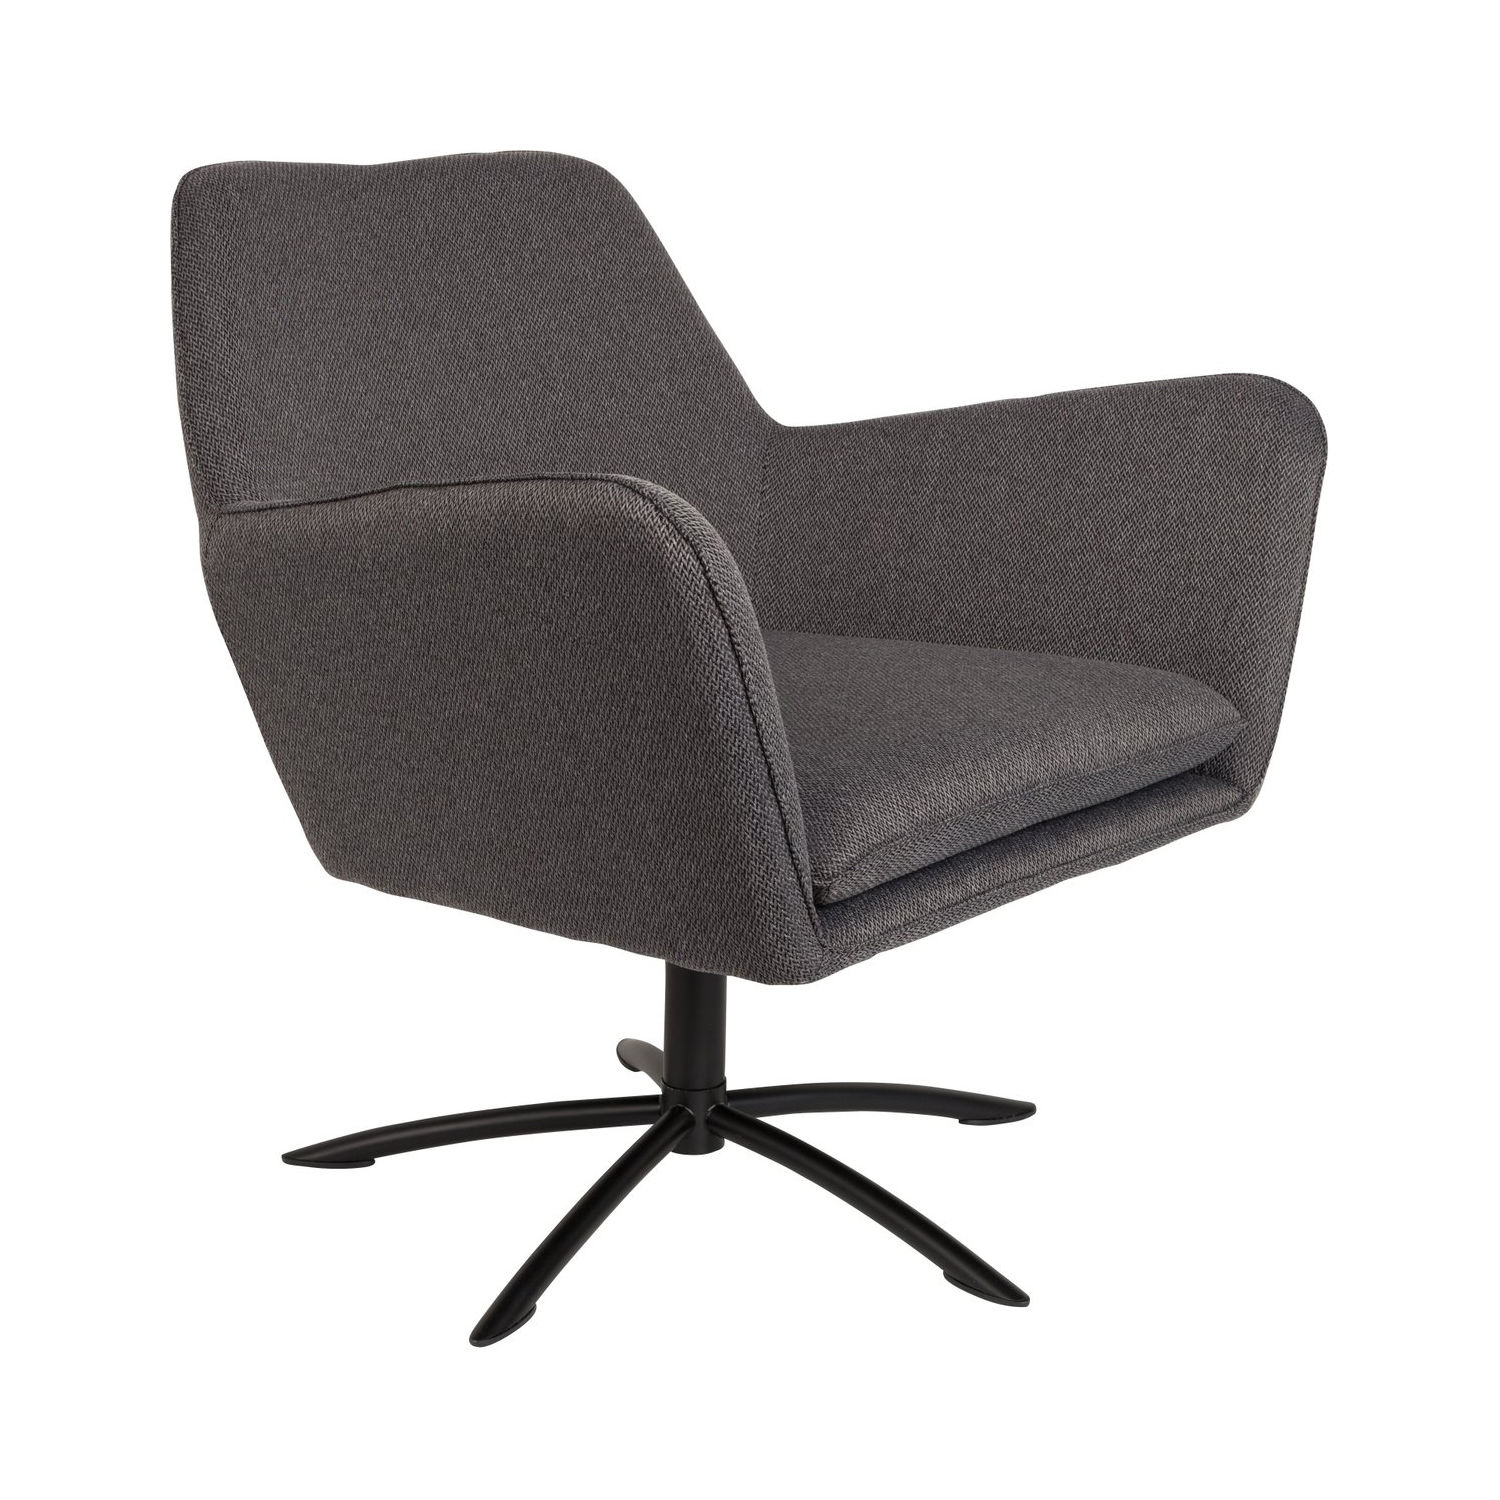 Knut fauteuil Luzo